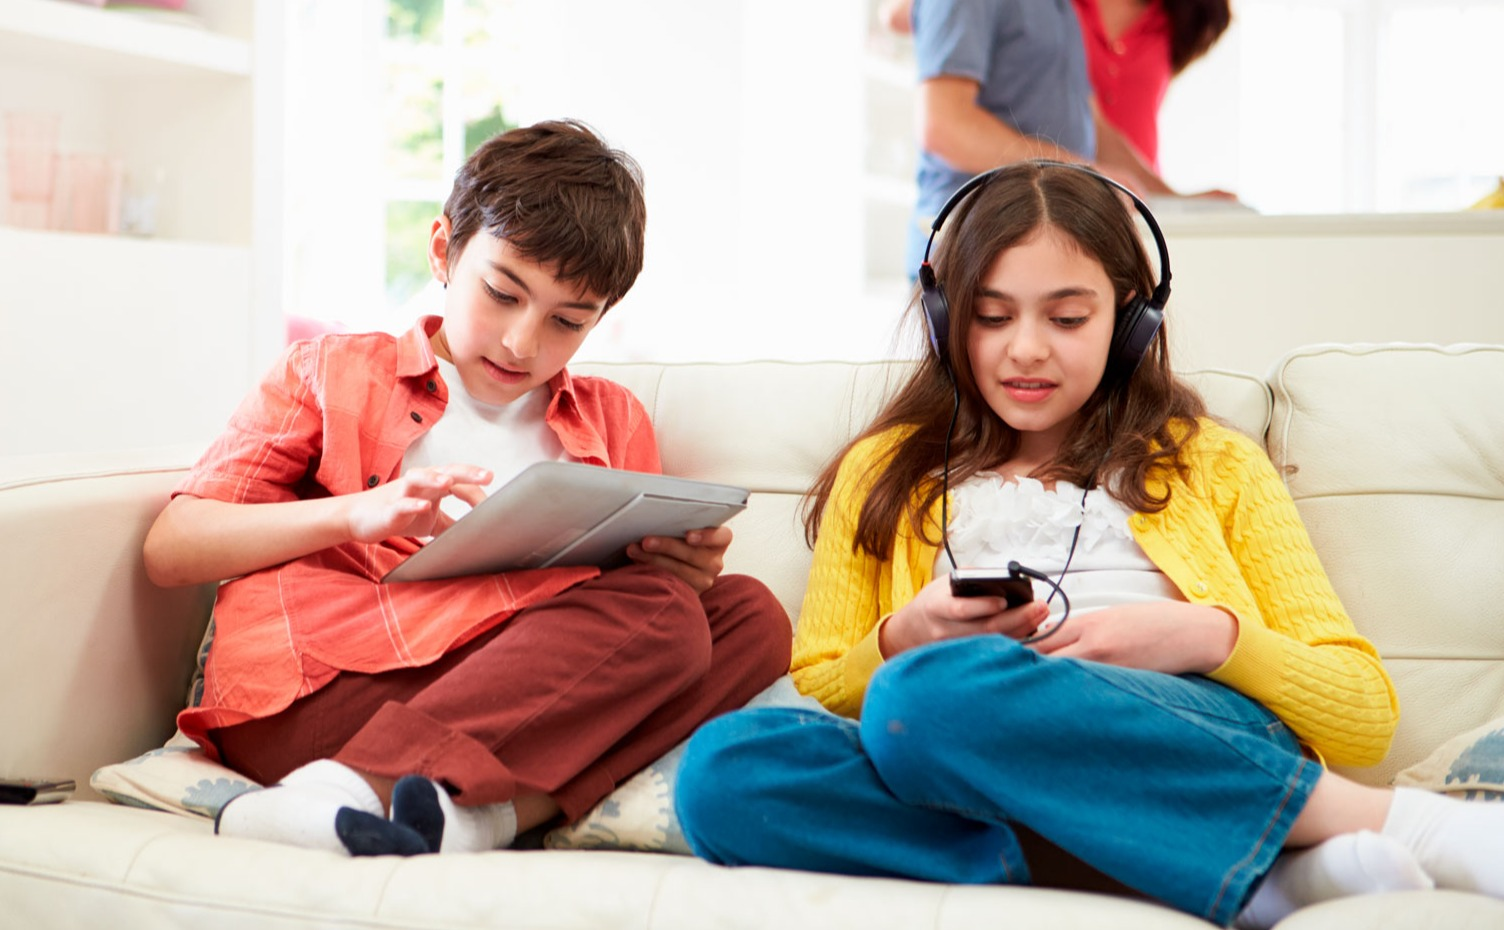 teen_kids_using_devices_on_couch_extended_2